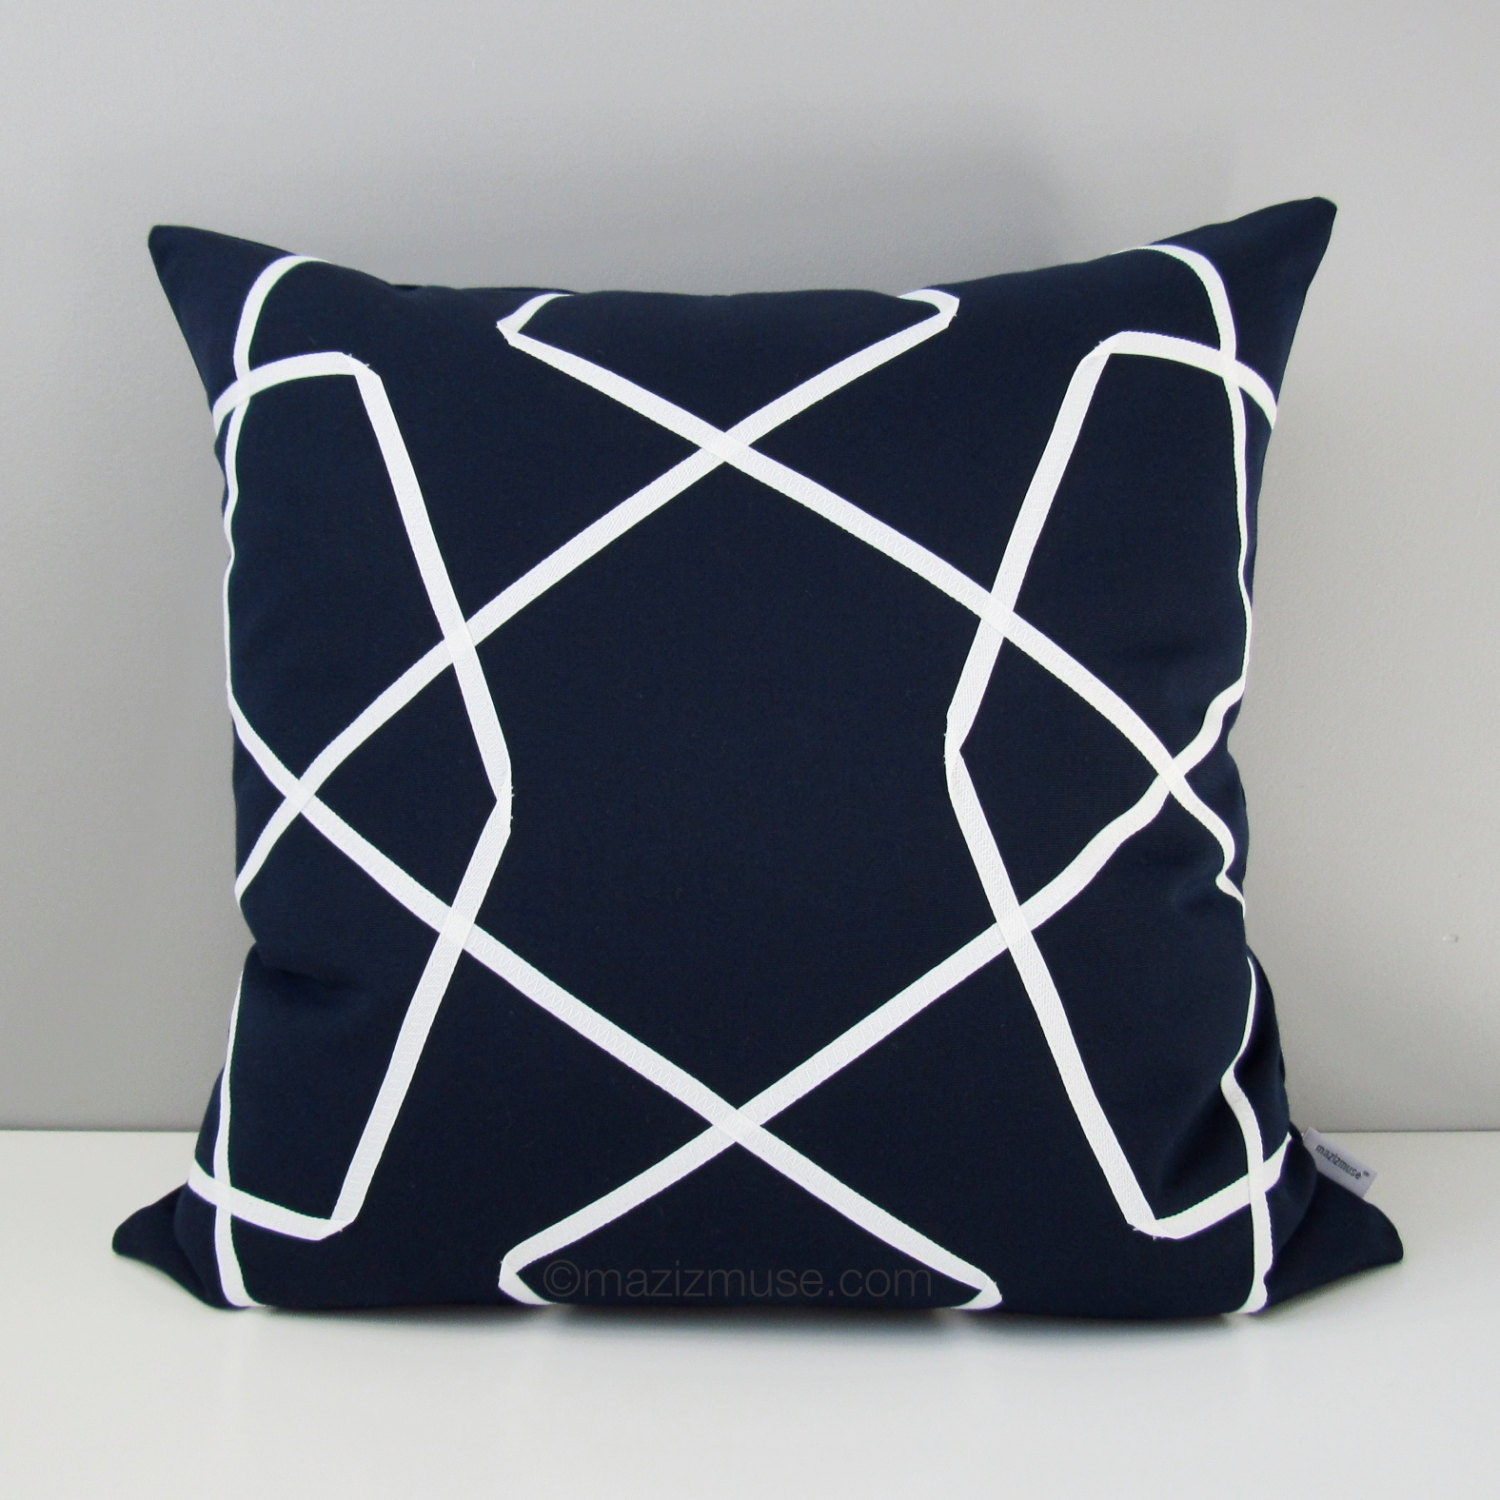 NAVY Blue & White Outdoor Pillow Cover Modern Geometric Throw